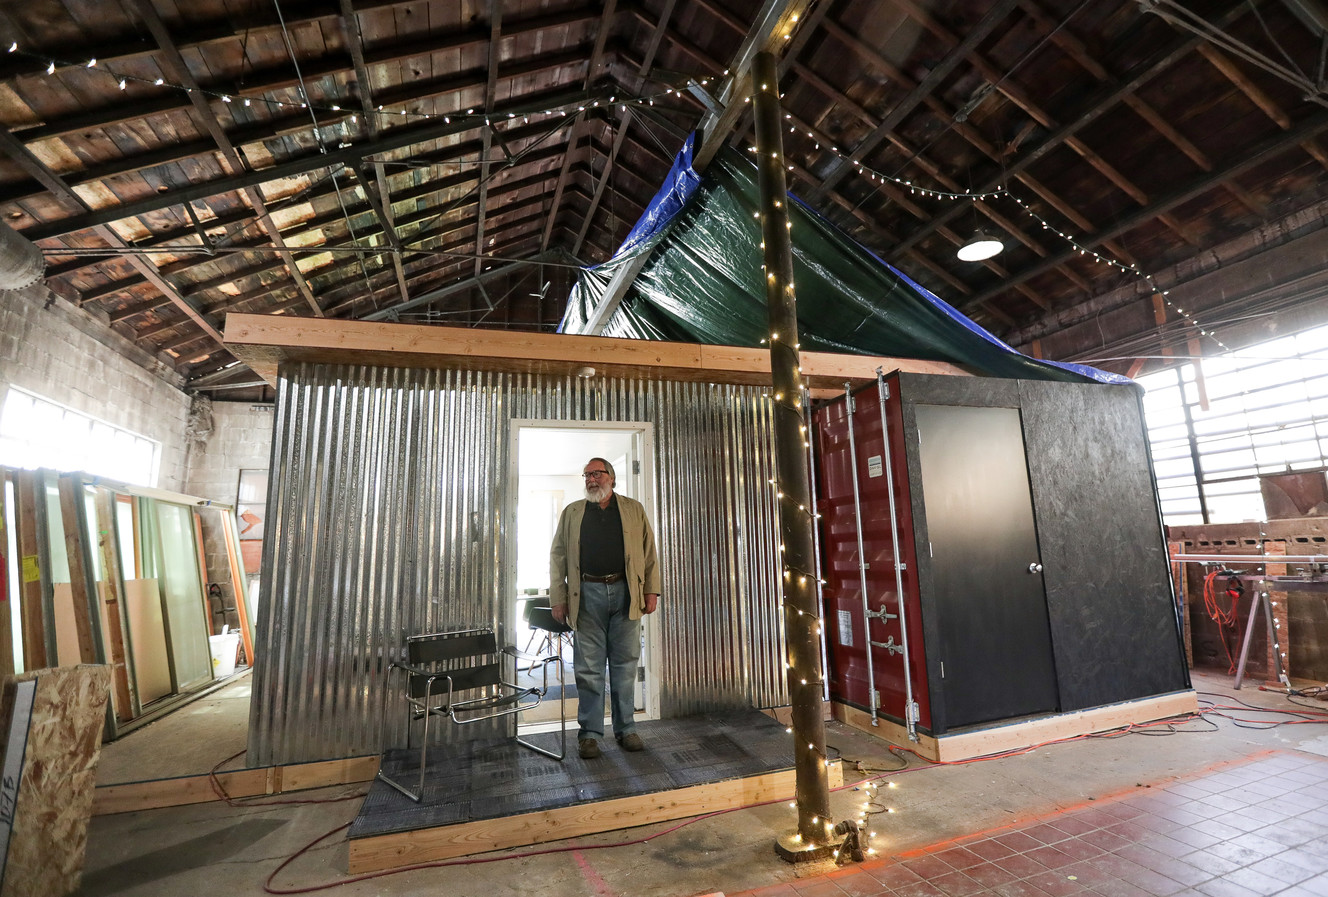 Comfy Jeff Shows Off A Model Shipping Container Home Inside His Shop Insalt Lake City On May Spenser Alternative Housing Could Mitigate Decreasing Affordability curbed Ksl Homes For Rent